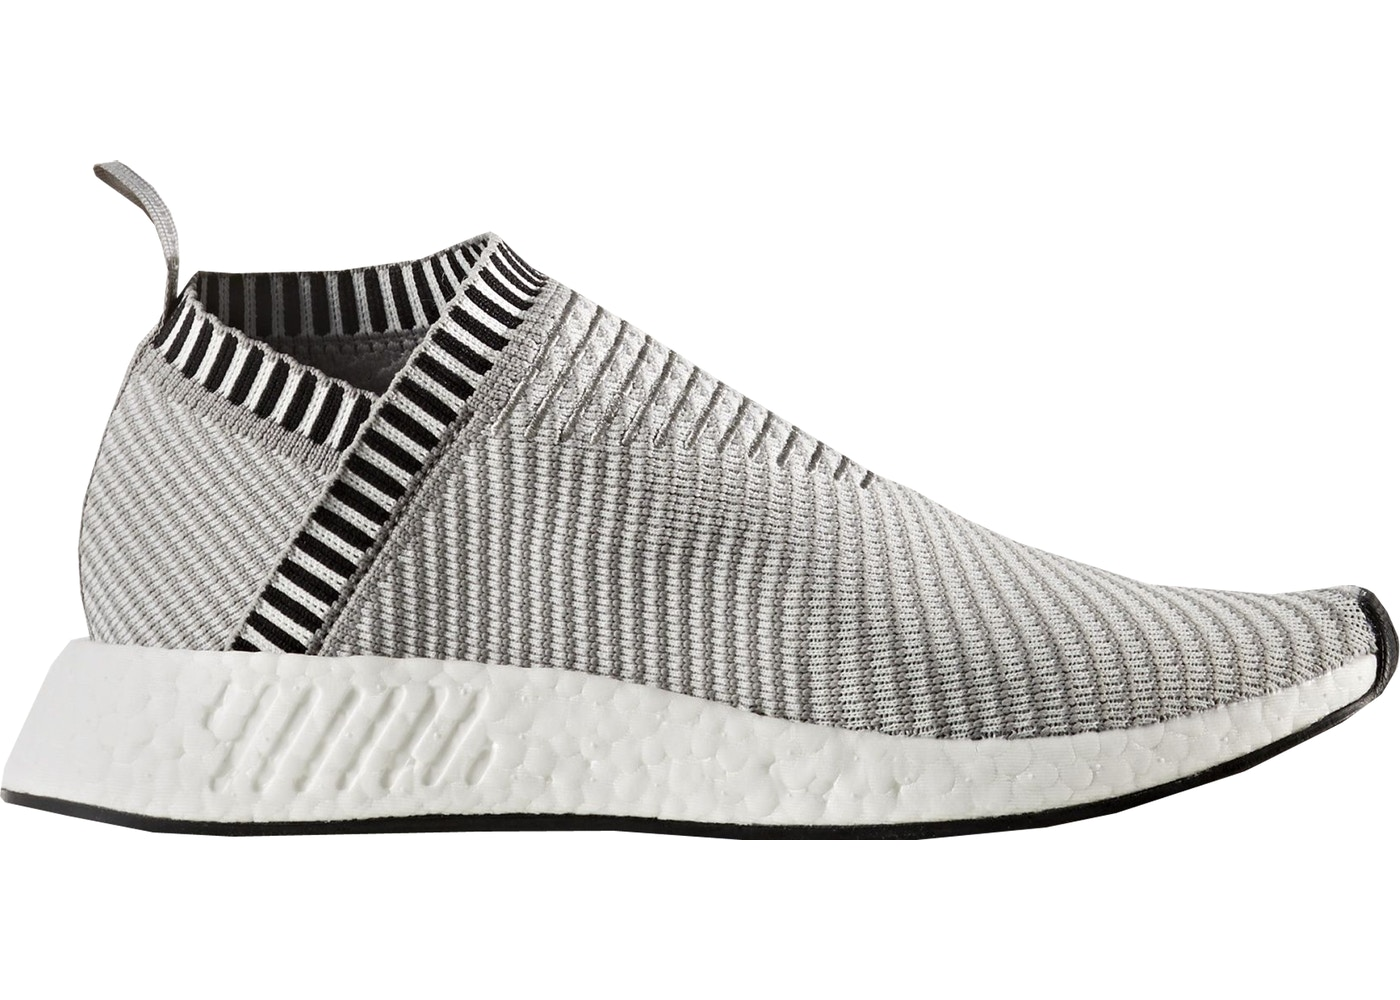 6654d3ff adidas NMD CS2 Dark Grey Shock Pink - BA7187